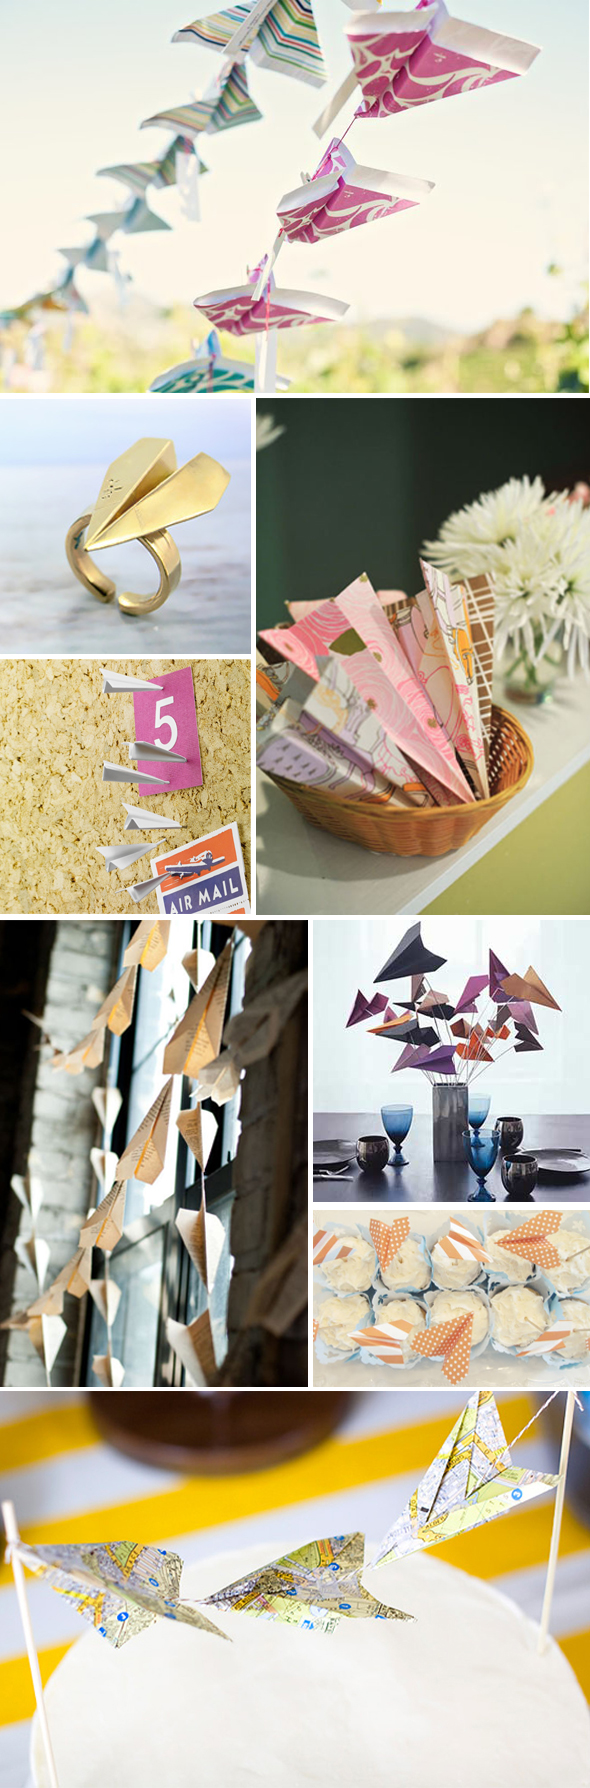 paper airplane wedding ideas Paper Airplane Destination Wedding Ideas